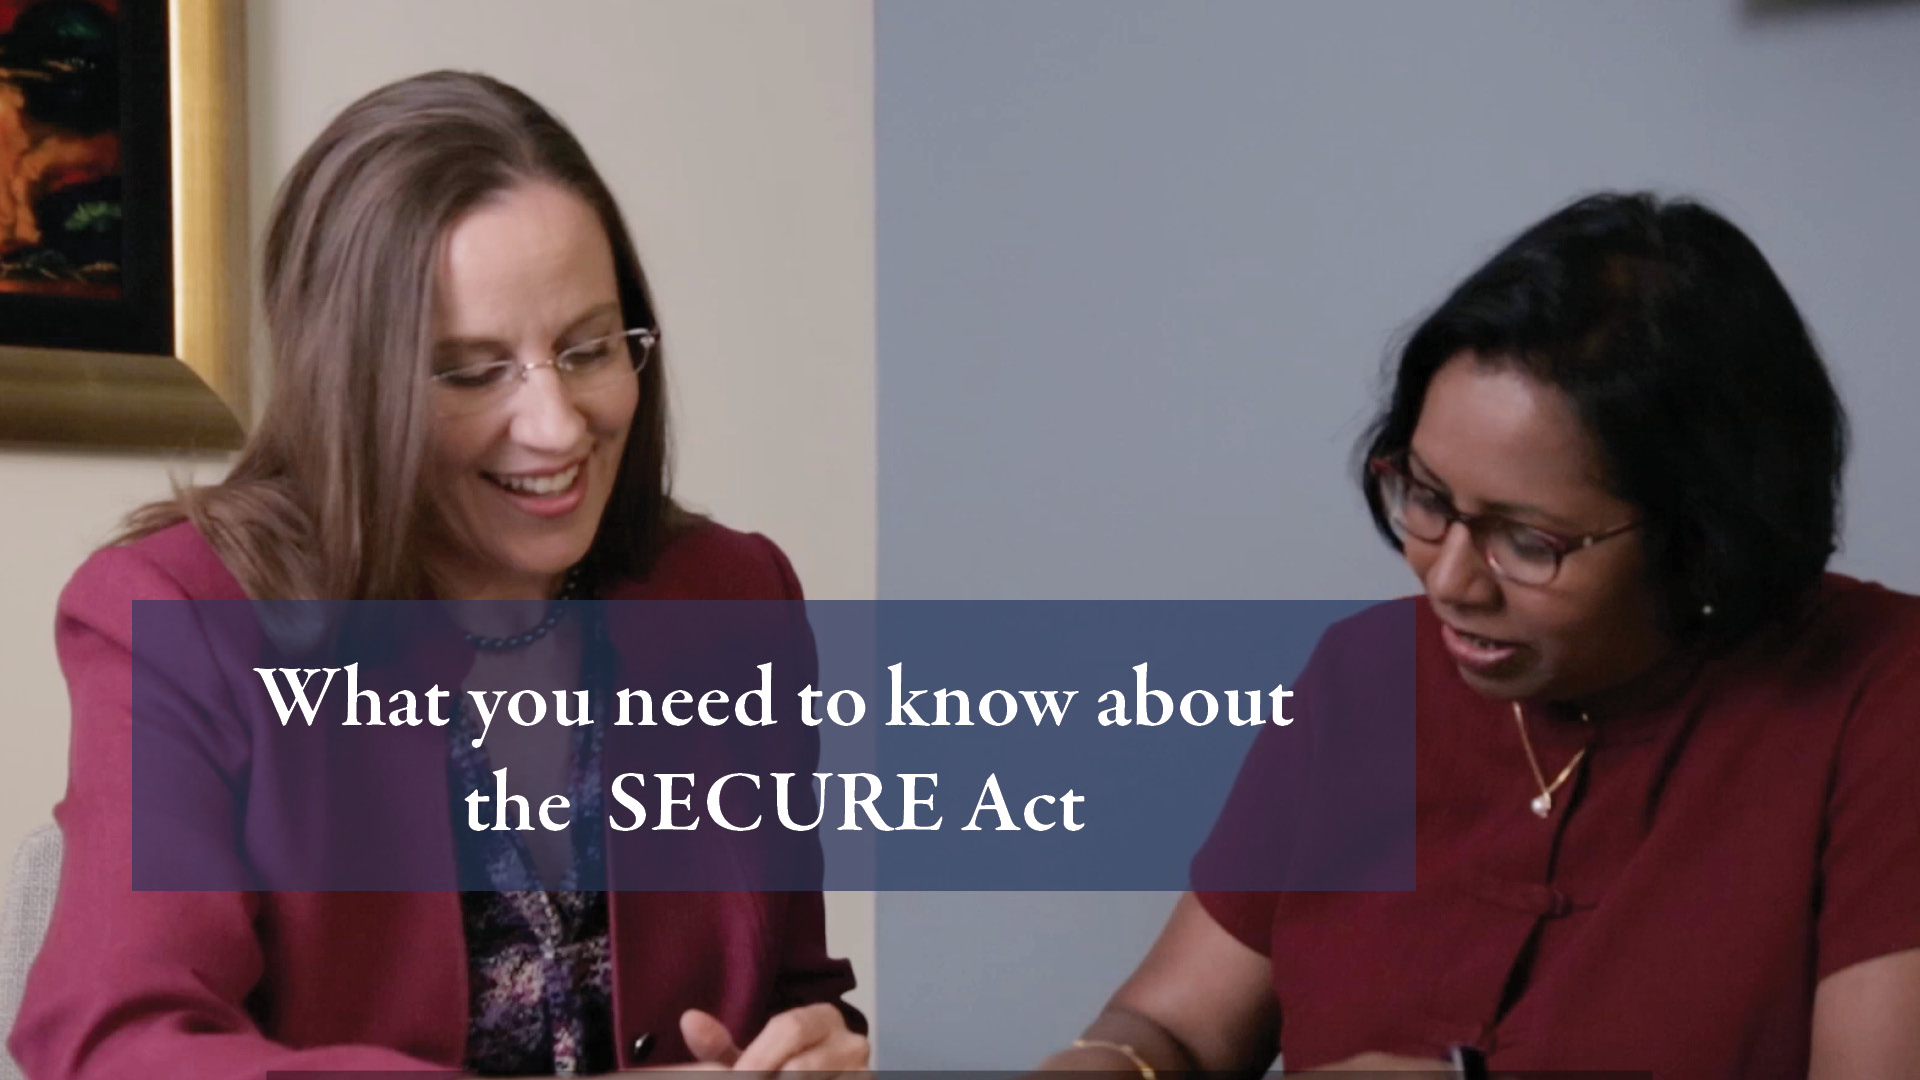 SECURE act video thumbnail